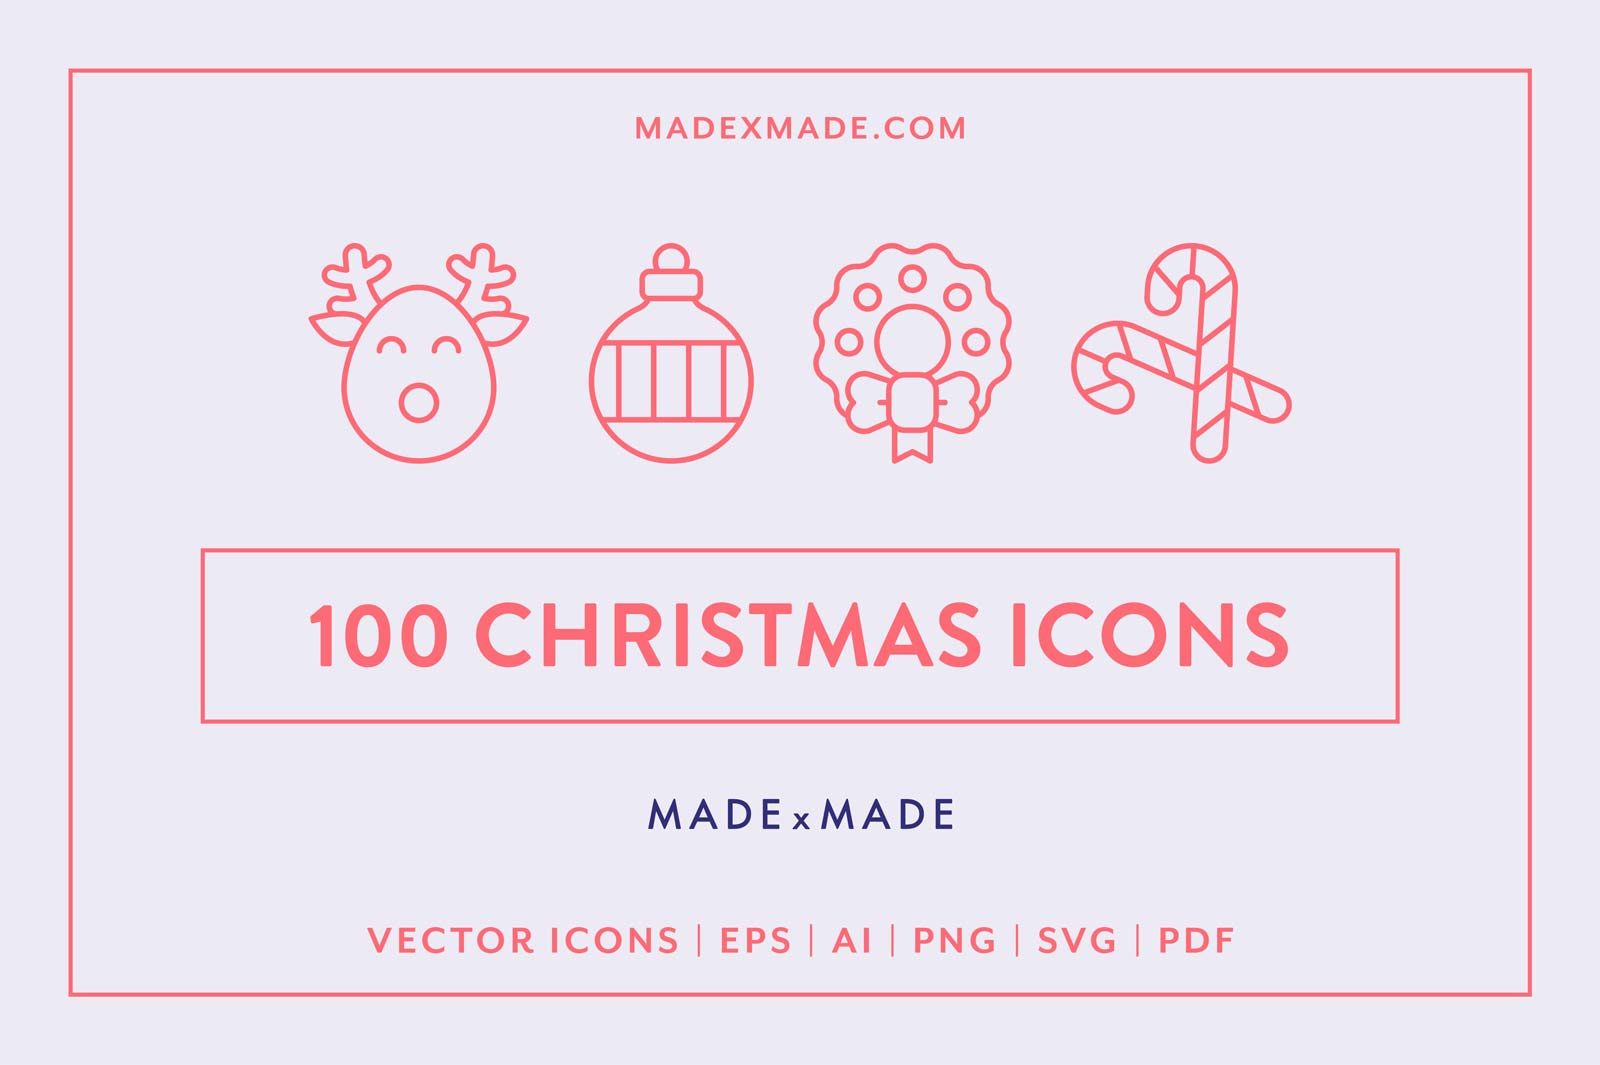 made x made icons christmas